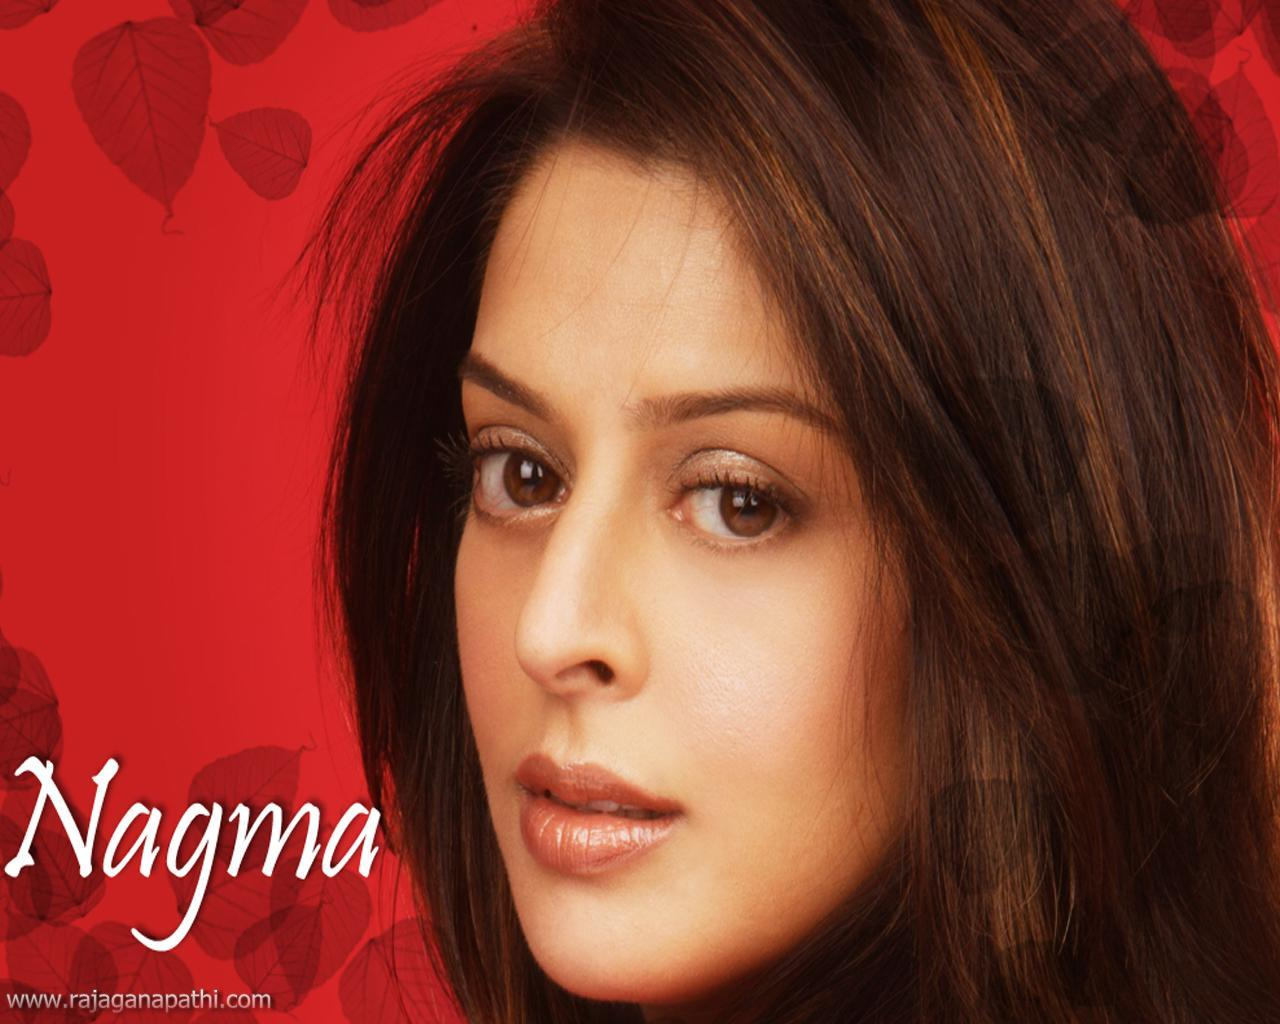 http://1.bp.blogspot.com/_NaaPByvUvGI/TGfEEWzdFkI/AAAAAAAALKQ/36v6v0QQLc8/s1600/NAGMA+WALLPAPERS,+ACTRESS+NAGMA+HIGH+QUALITY+WALLPAPERS,+NAGMA+HOT+WALLPAPERS_01.jpg